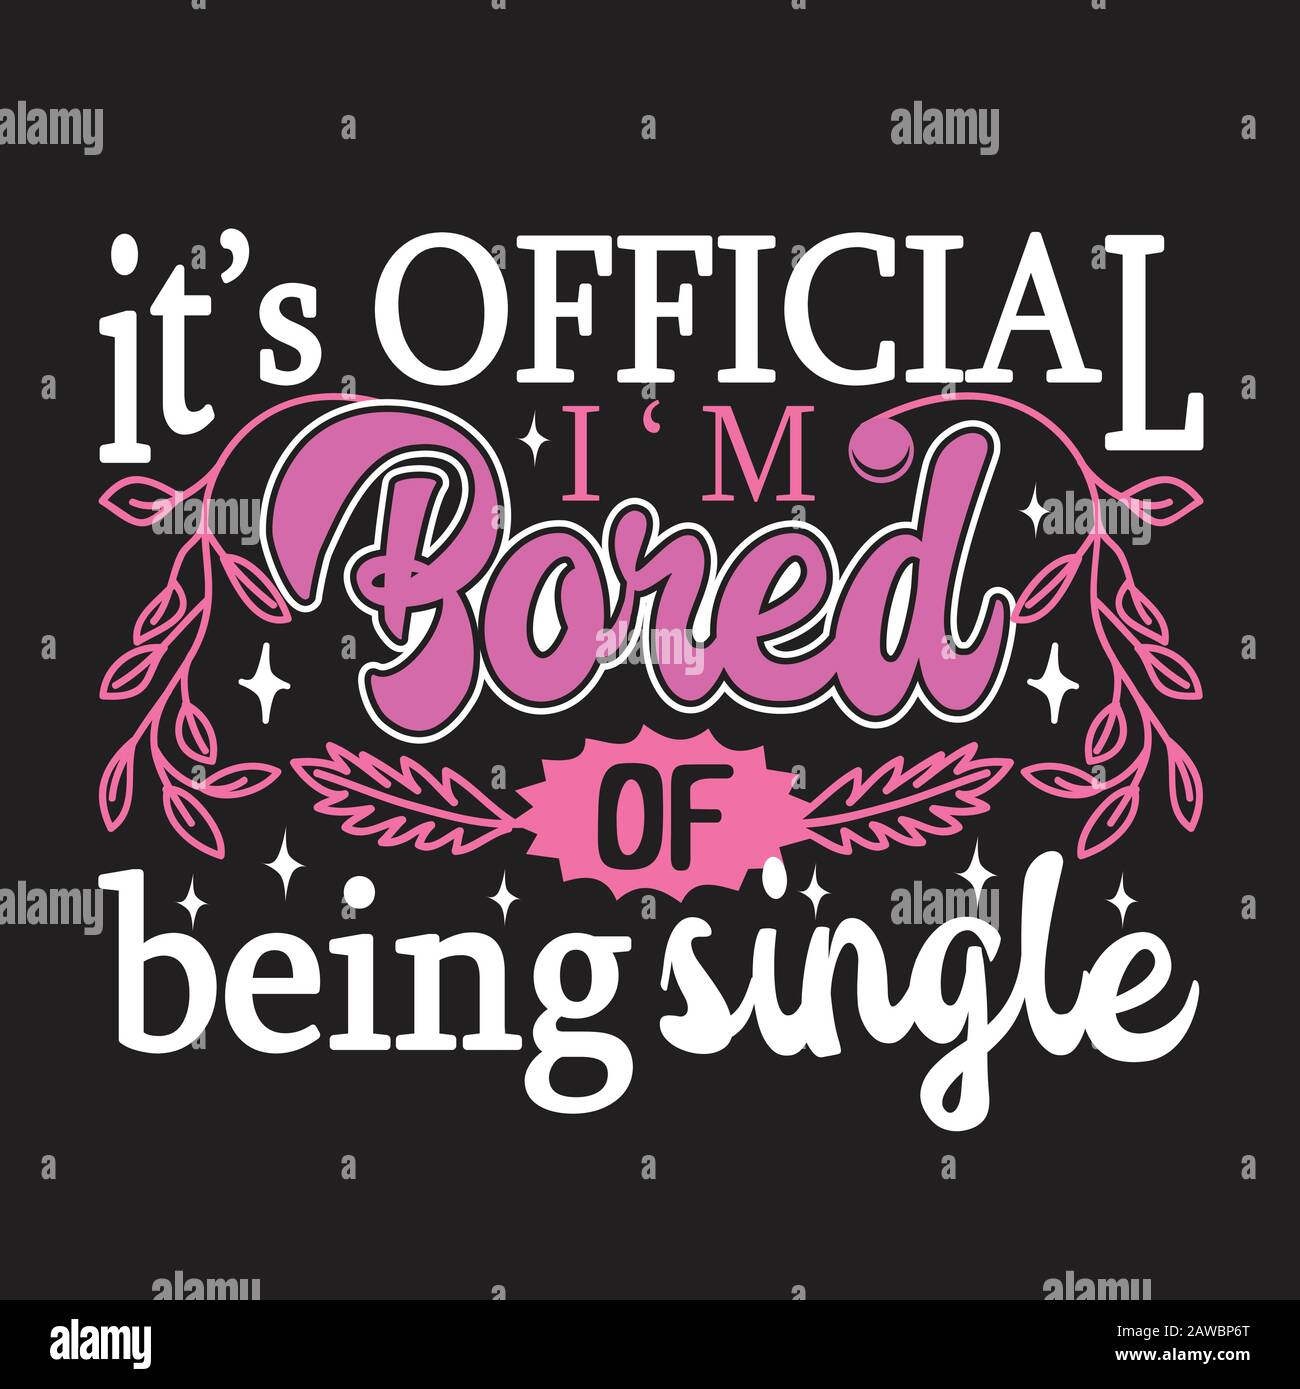 Single Quotes And Slogan Good For Print It S Official I M Bored Of Being Single Stock Vector Image Art Alamy